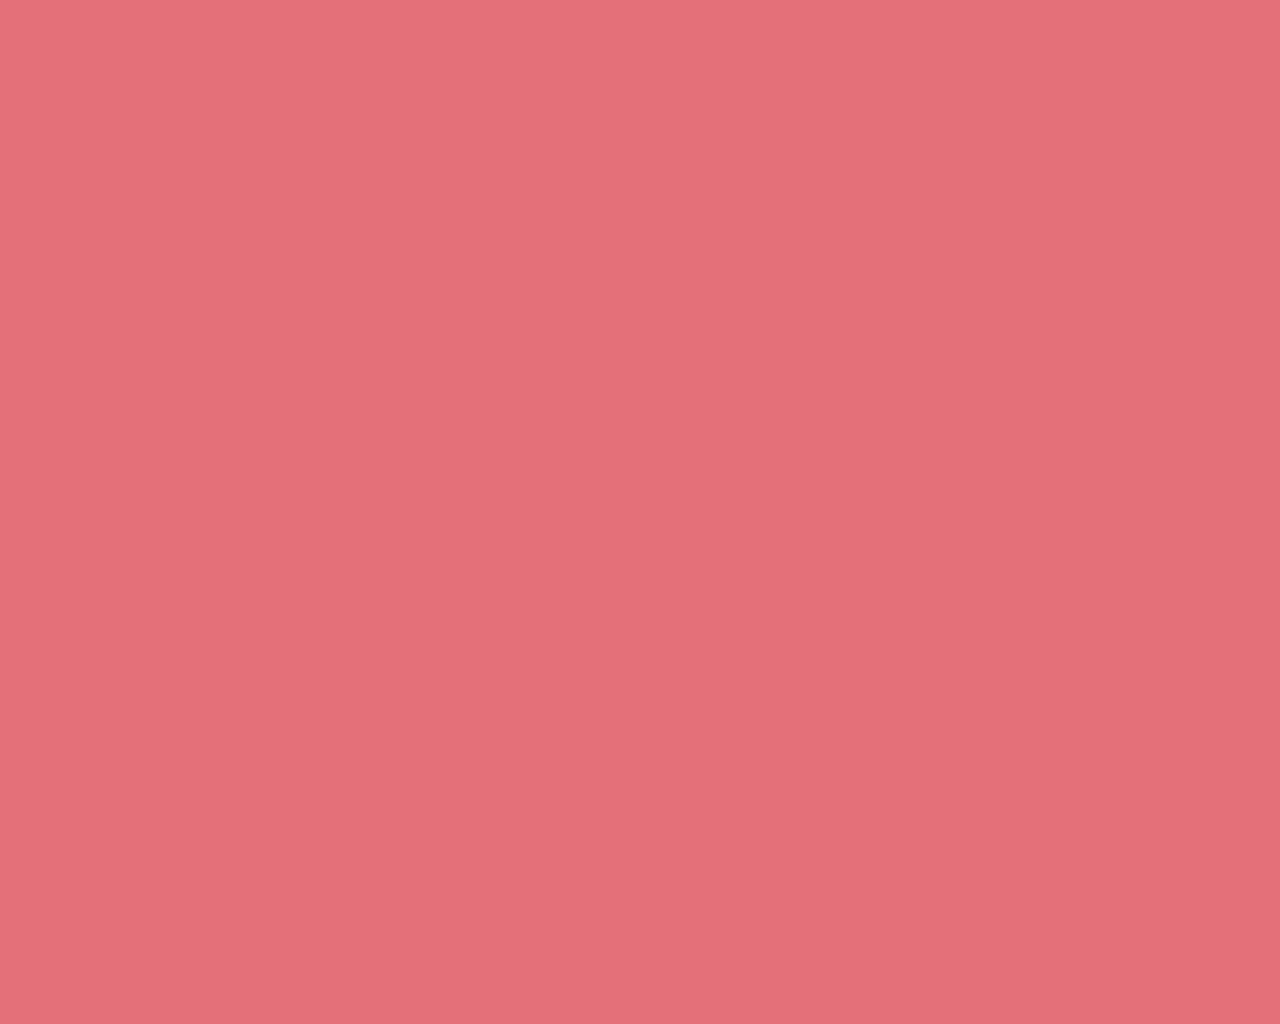 1280x1024 Candy Pink Solid Color Background